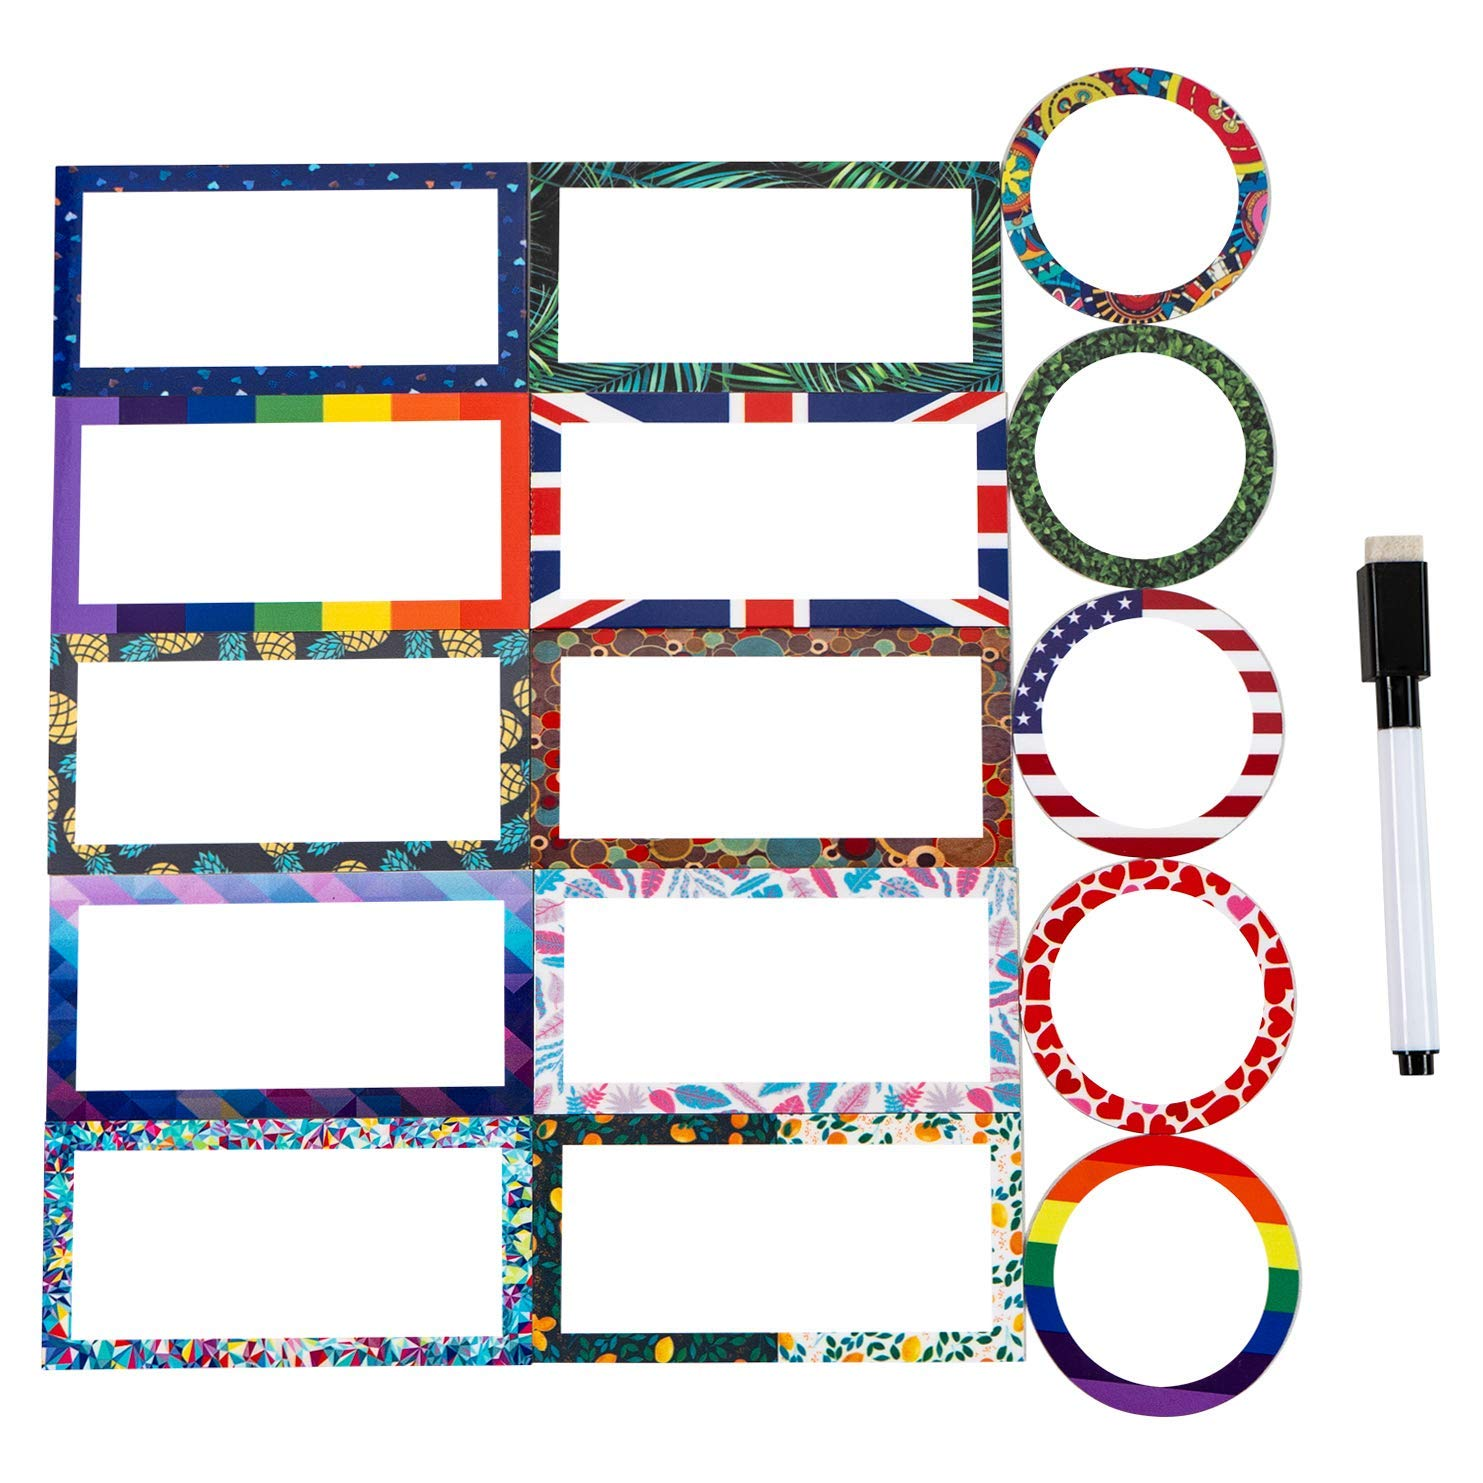 40 Magnetic Dry Erase Labels Name Plates - Set Accent Write On Whiteboard Magnets for Classrooms,Metal Shelving, Refrigerator, File Cabinets - Includes 1 Black Dry Erase Marker The Winners Time Products